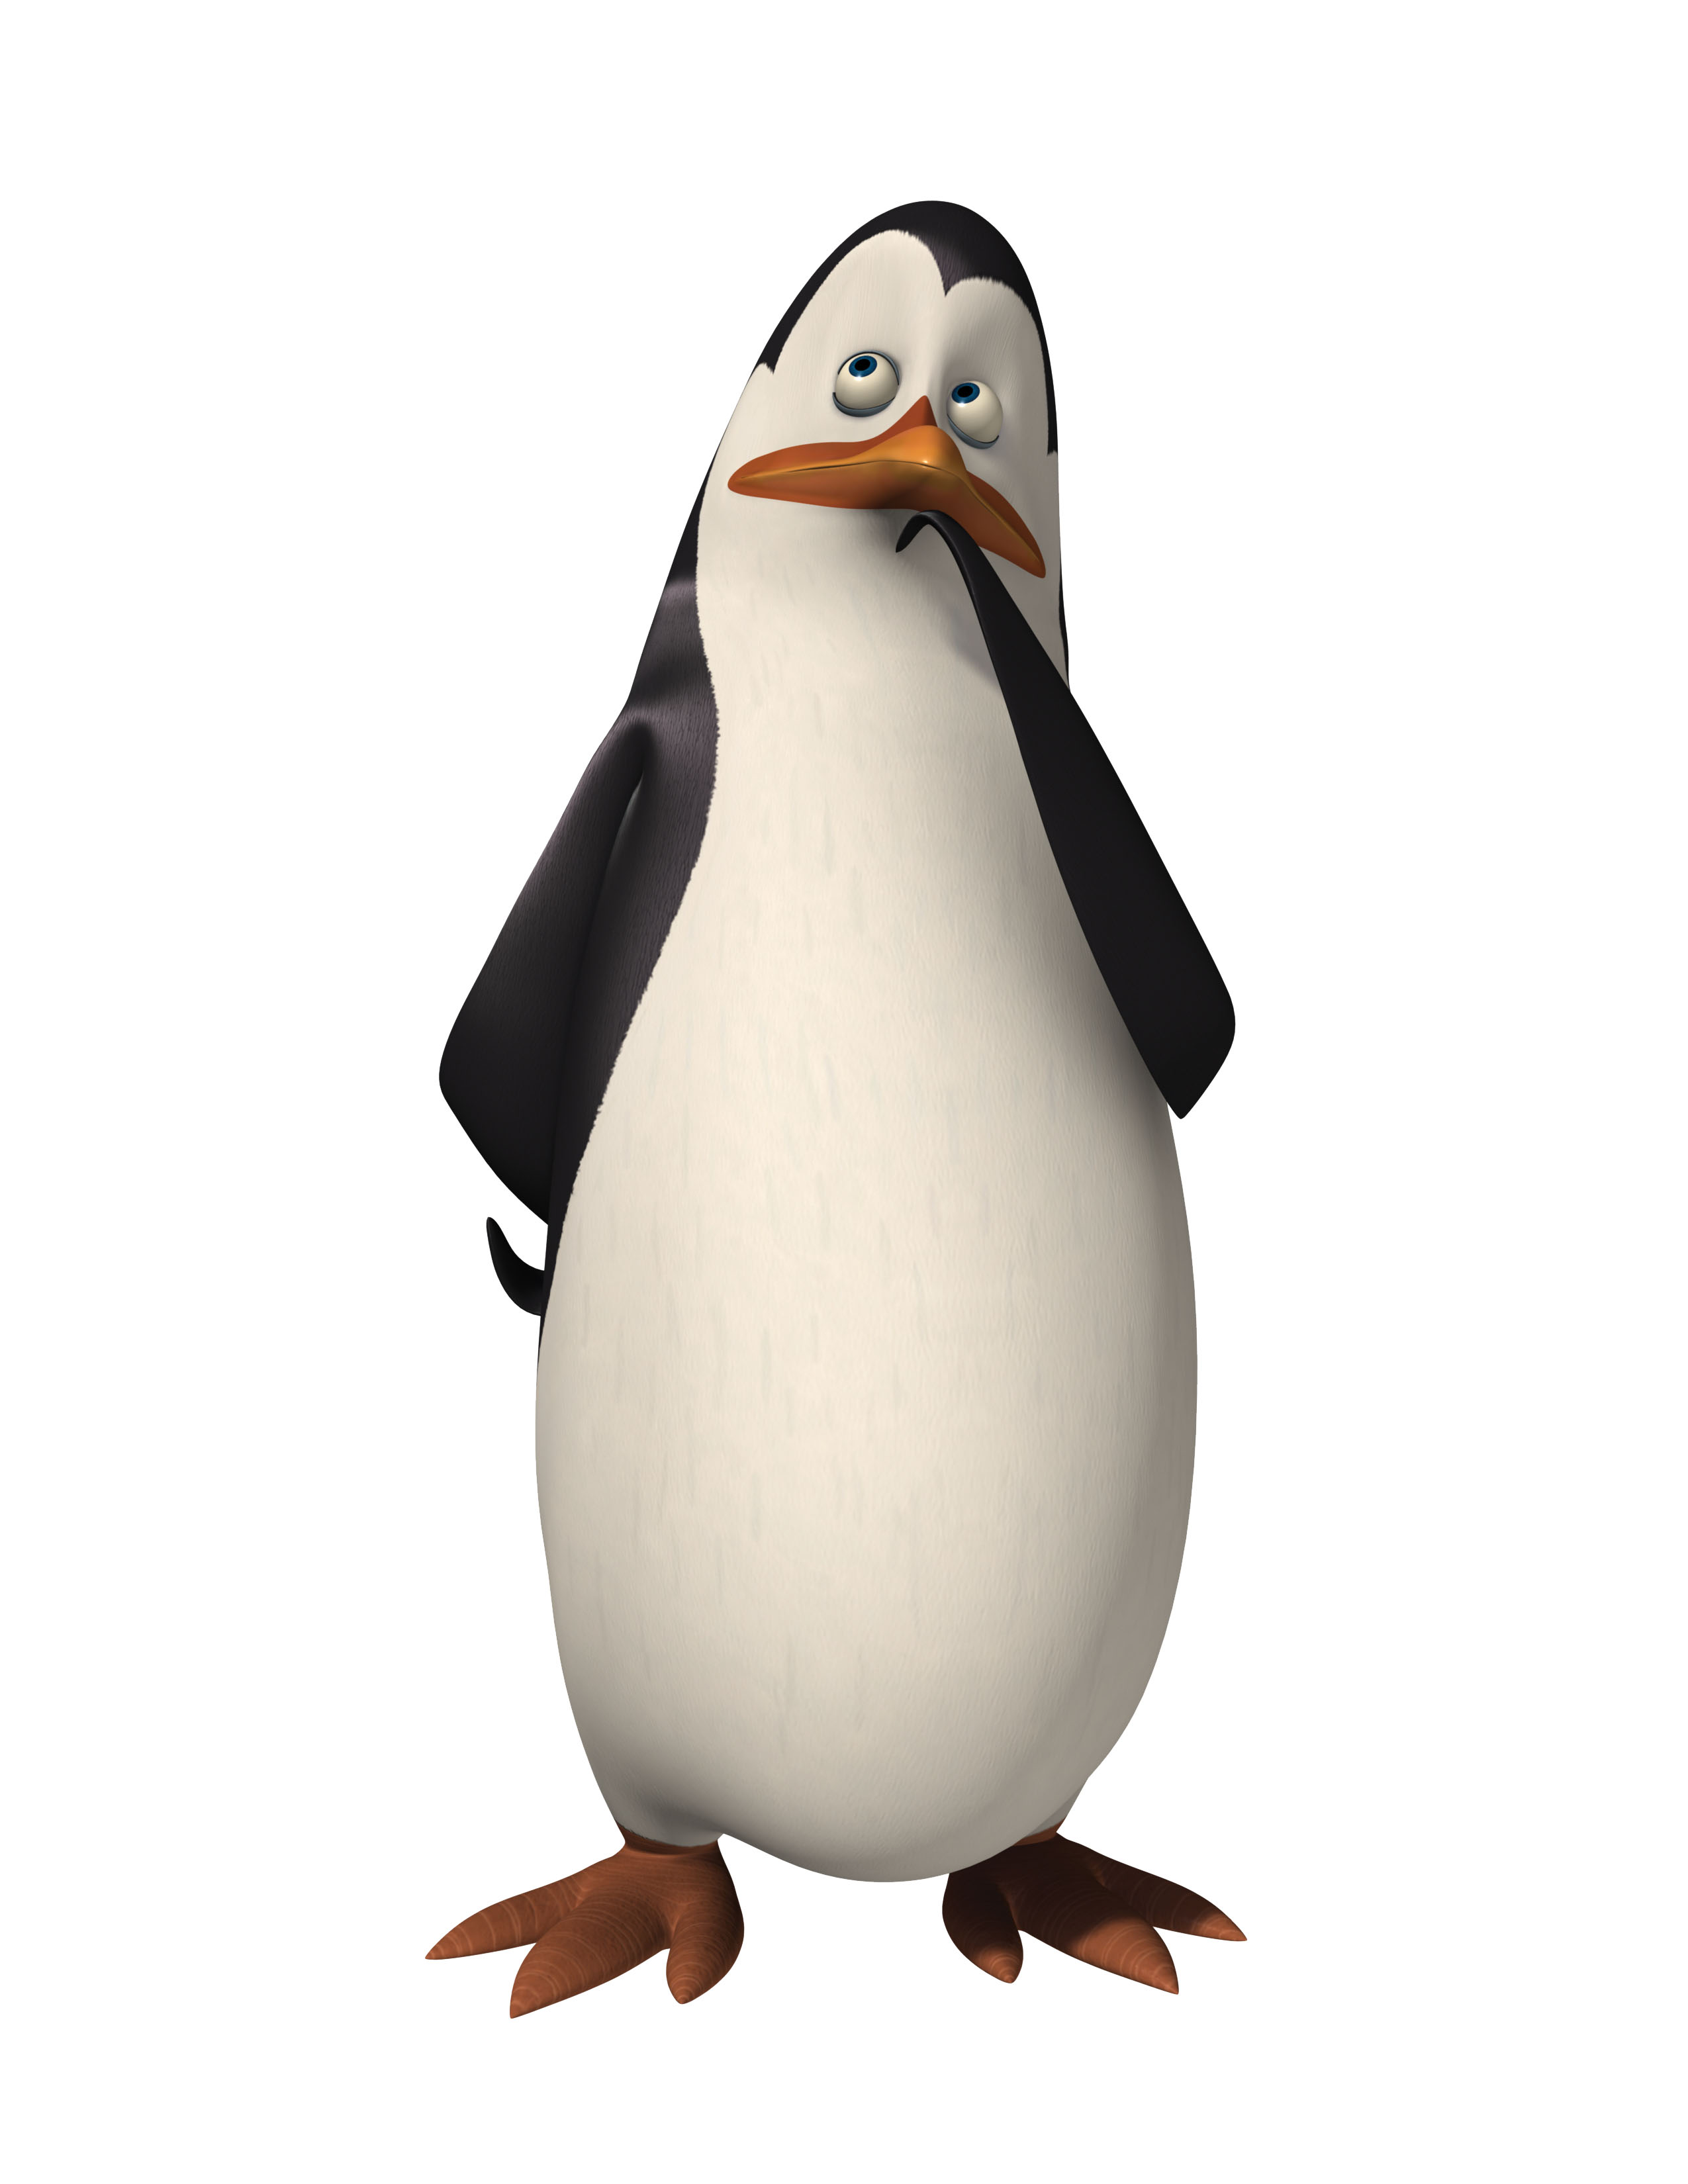 Penguins of madagascar clipart clip royalty free 71+ Penguins Of Madagascar Clipart   ClipartLook clip royalty free